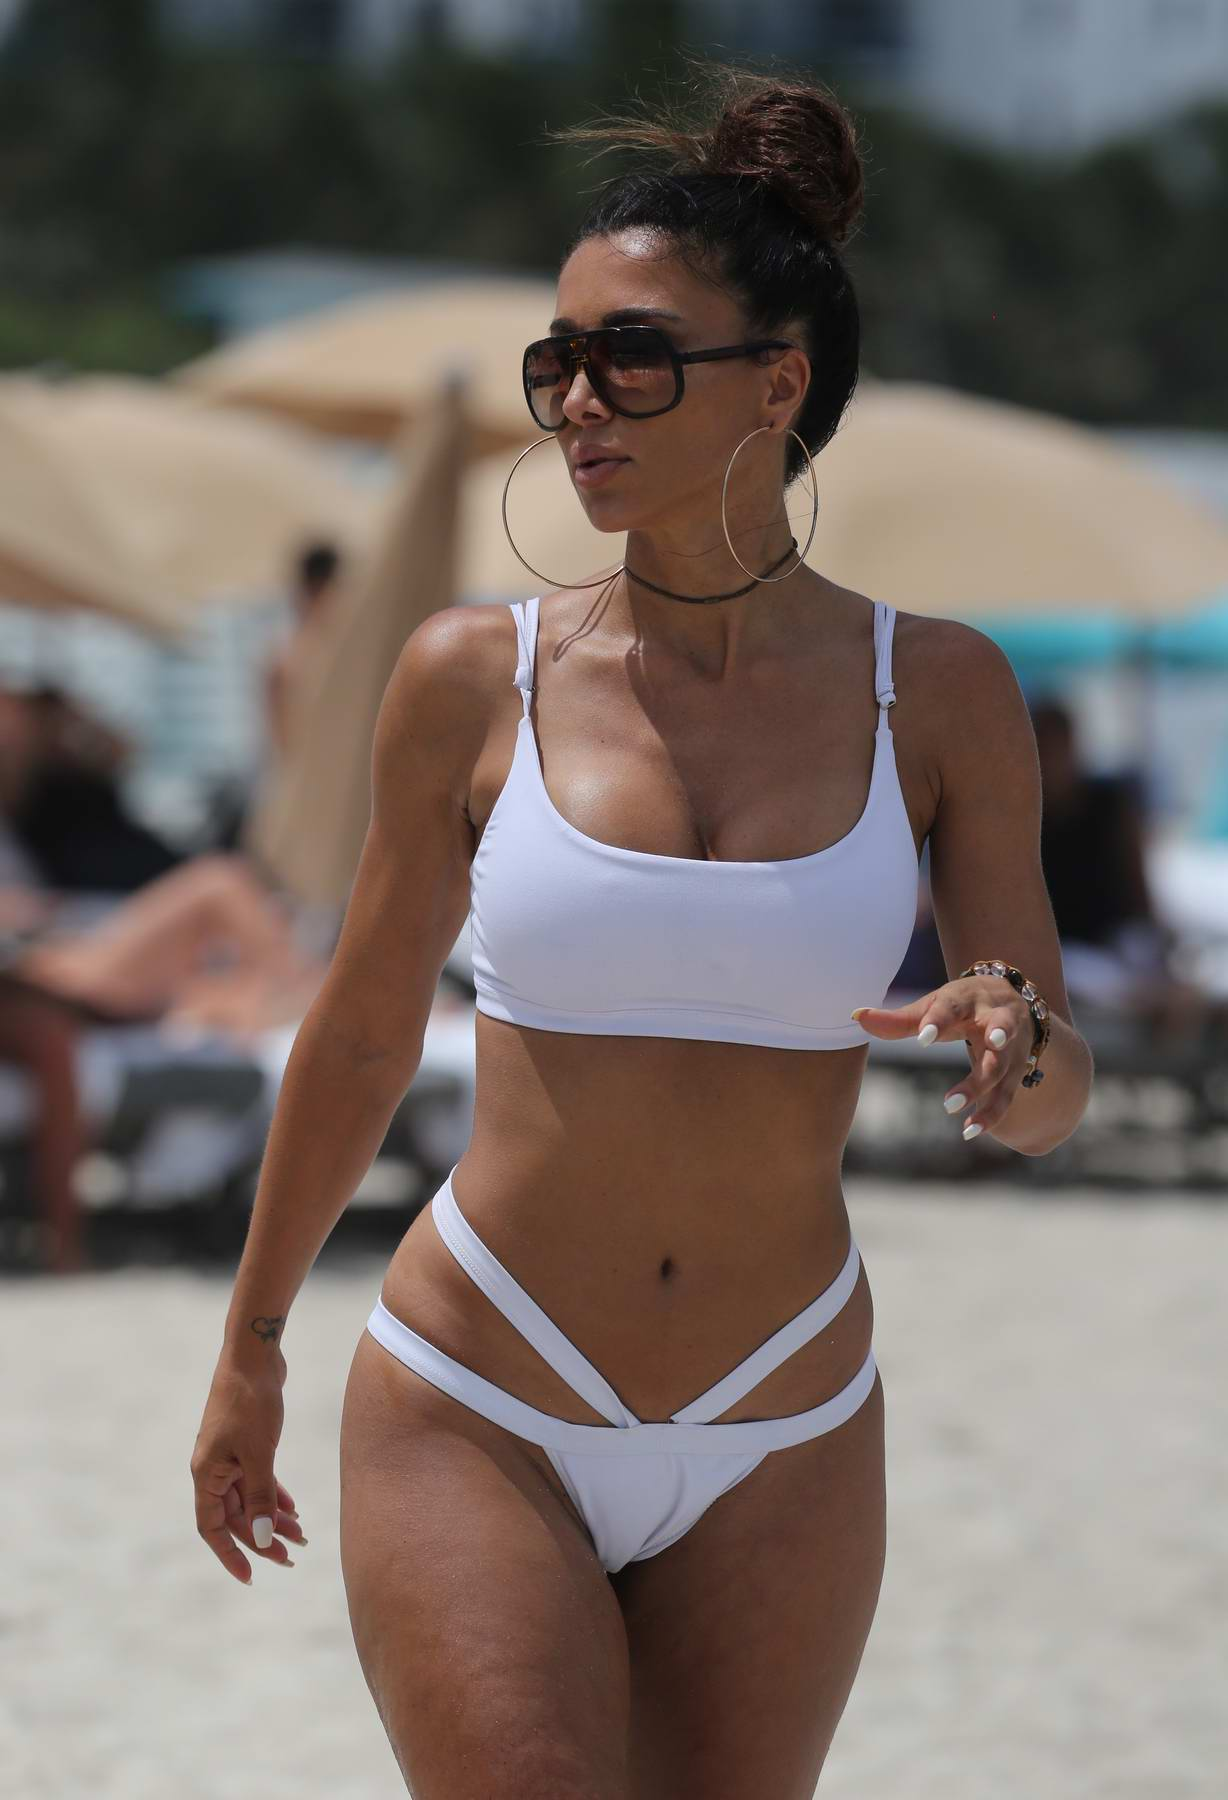 Metisha Schaefer in a White Bikini enjoys her Vacations on the Beach in Miami